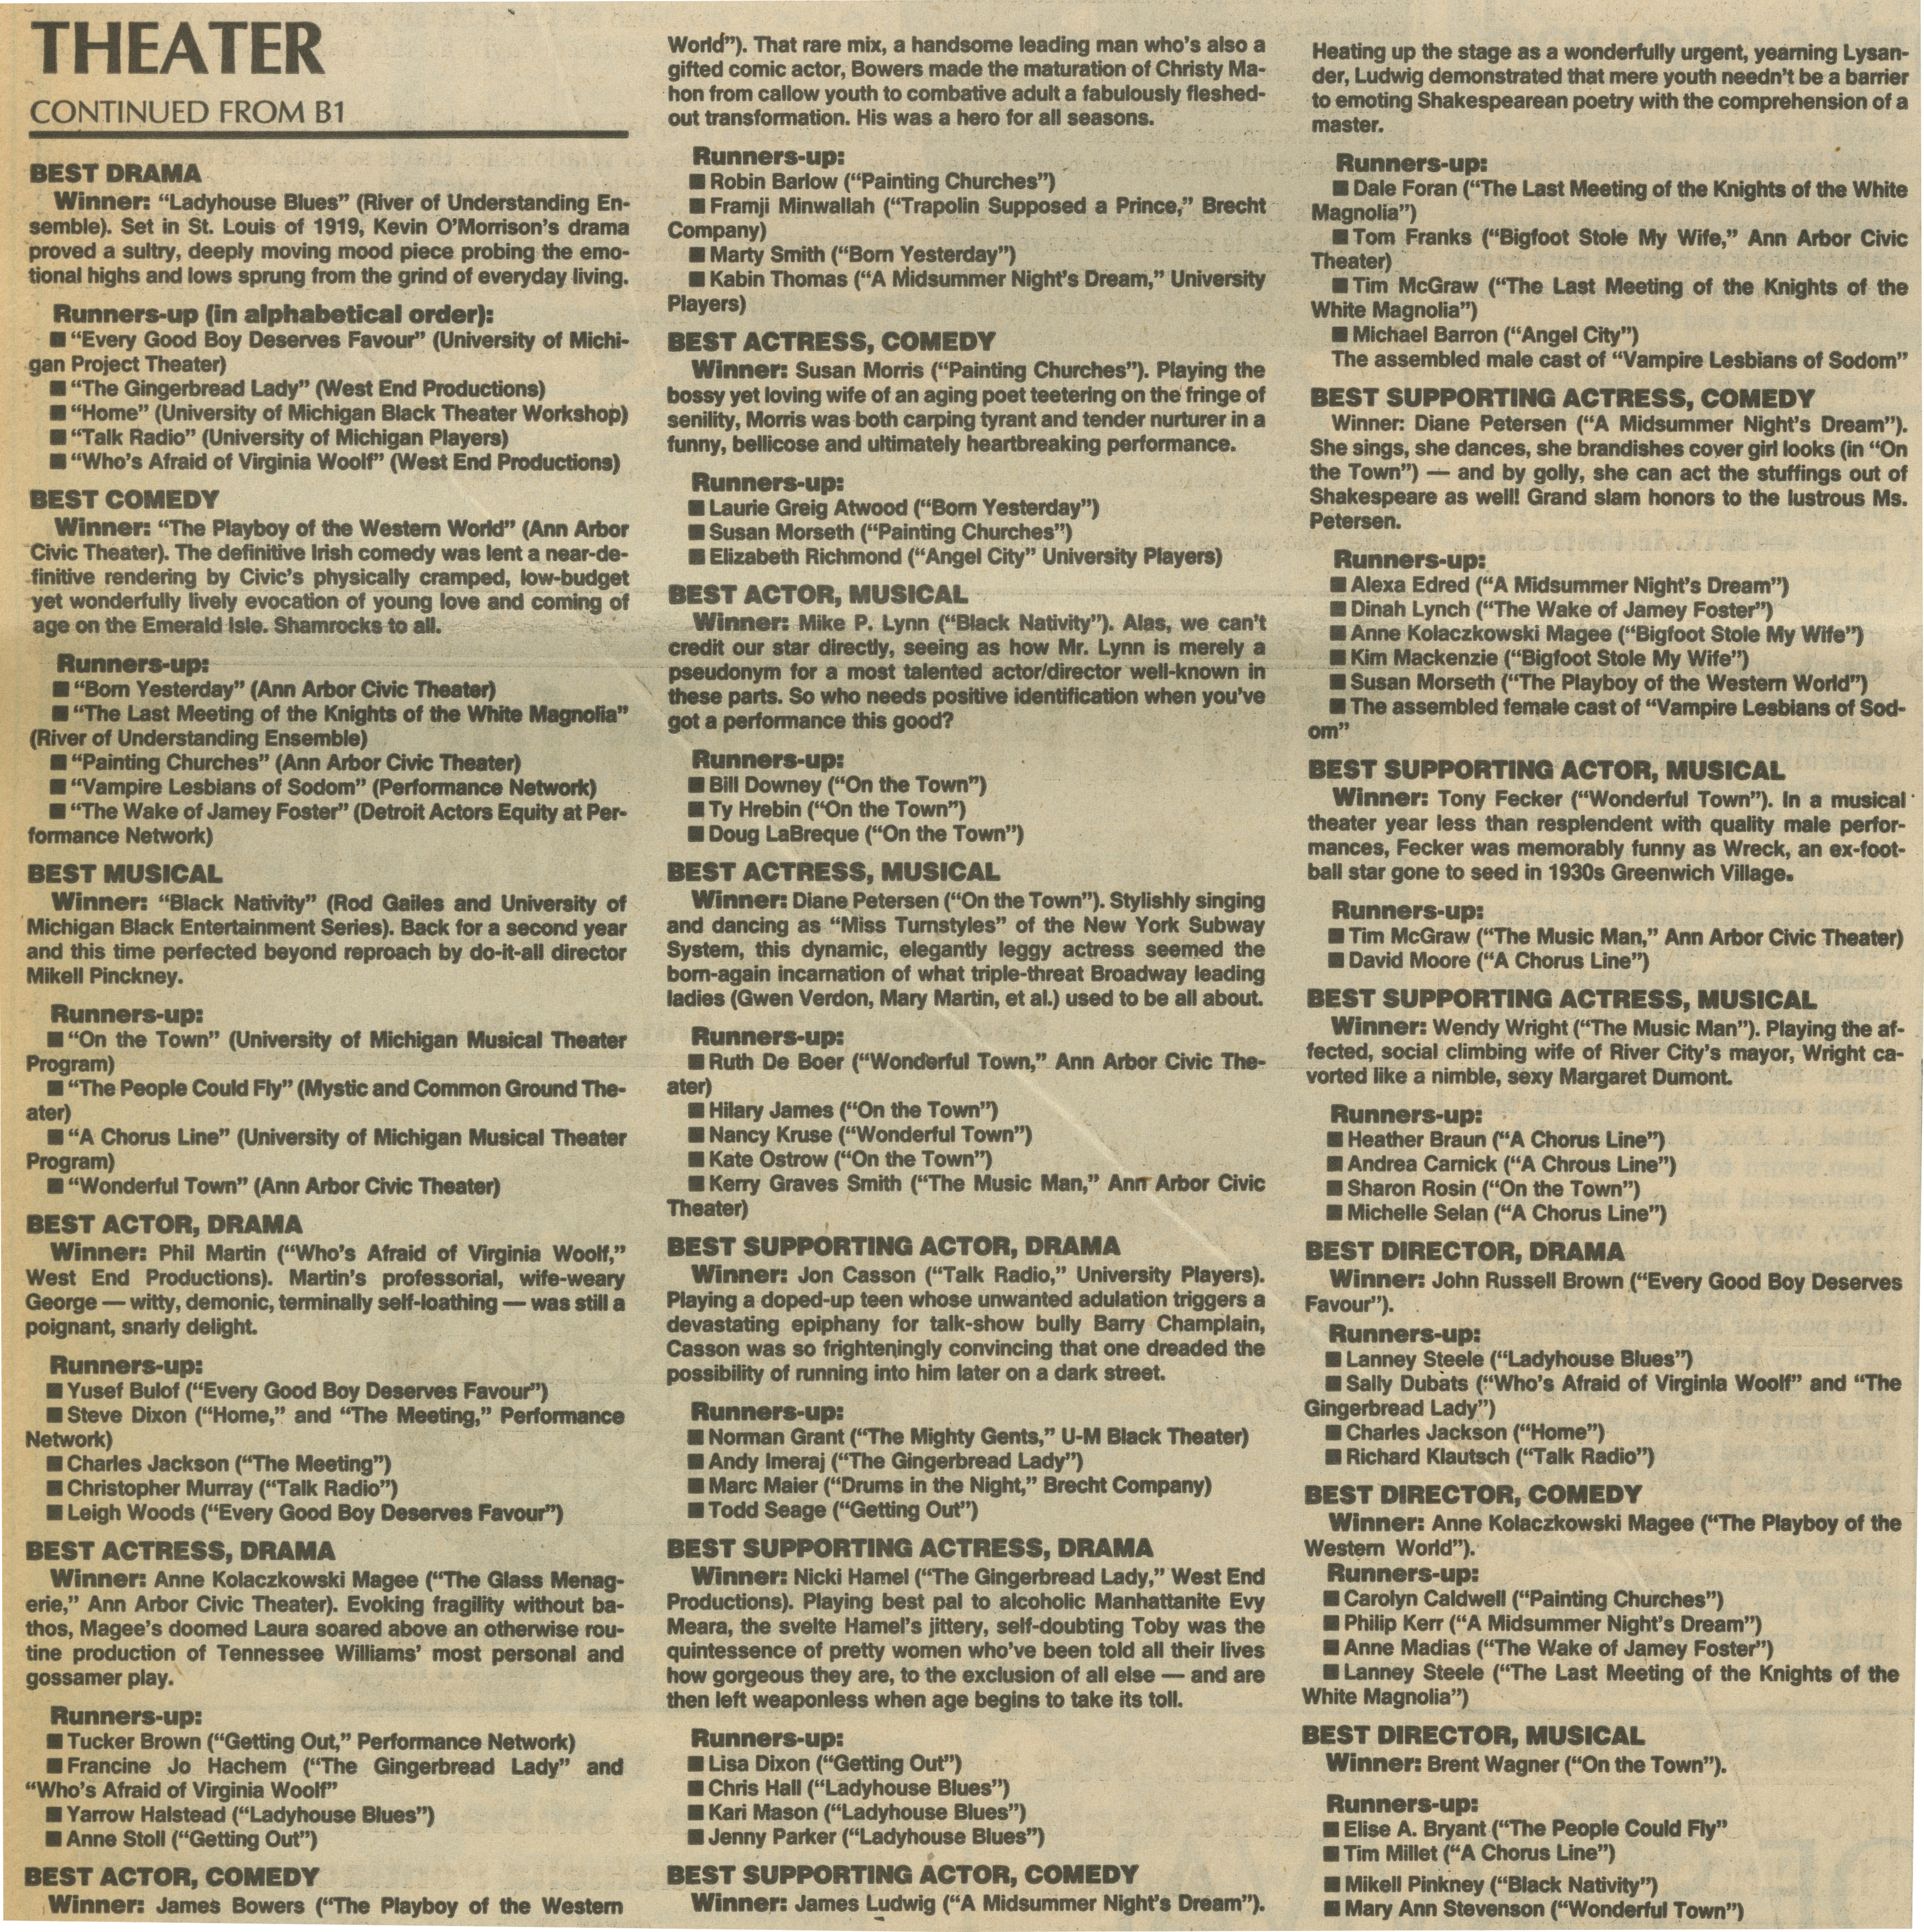 Quality theater blossomed in '88 image